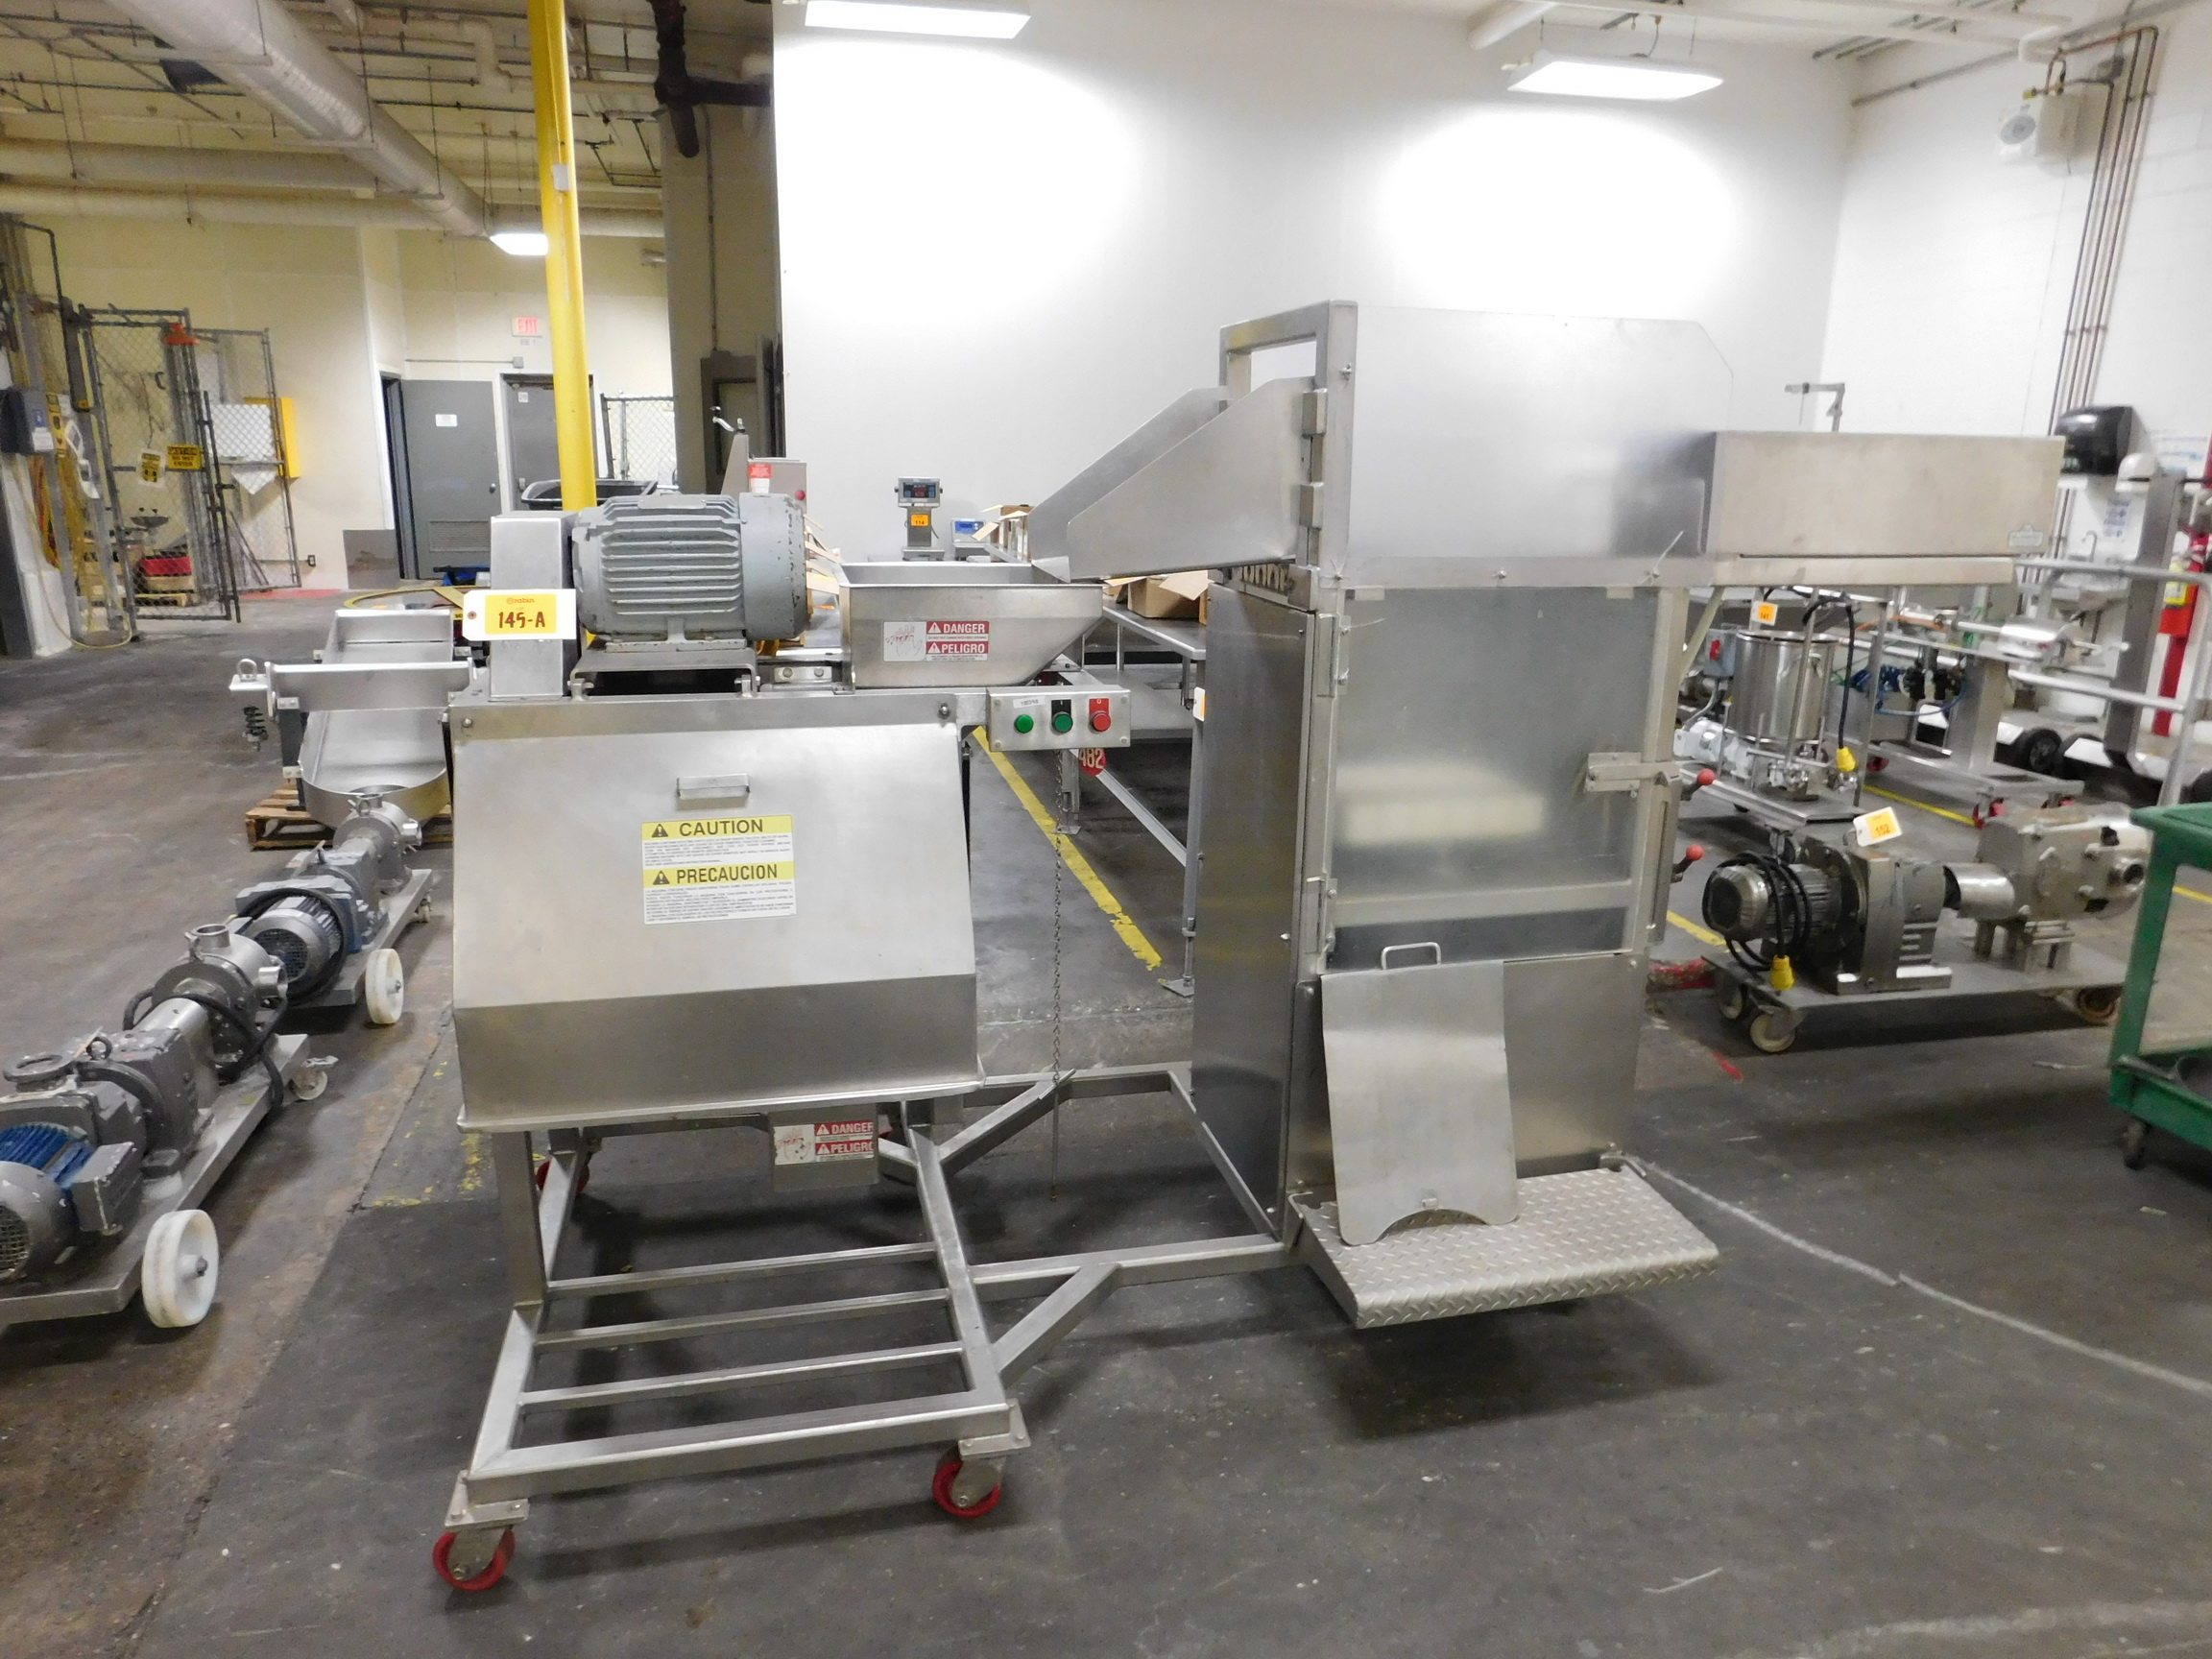 Lot 145A - Dicer/Block Cutter